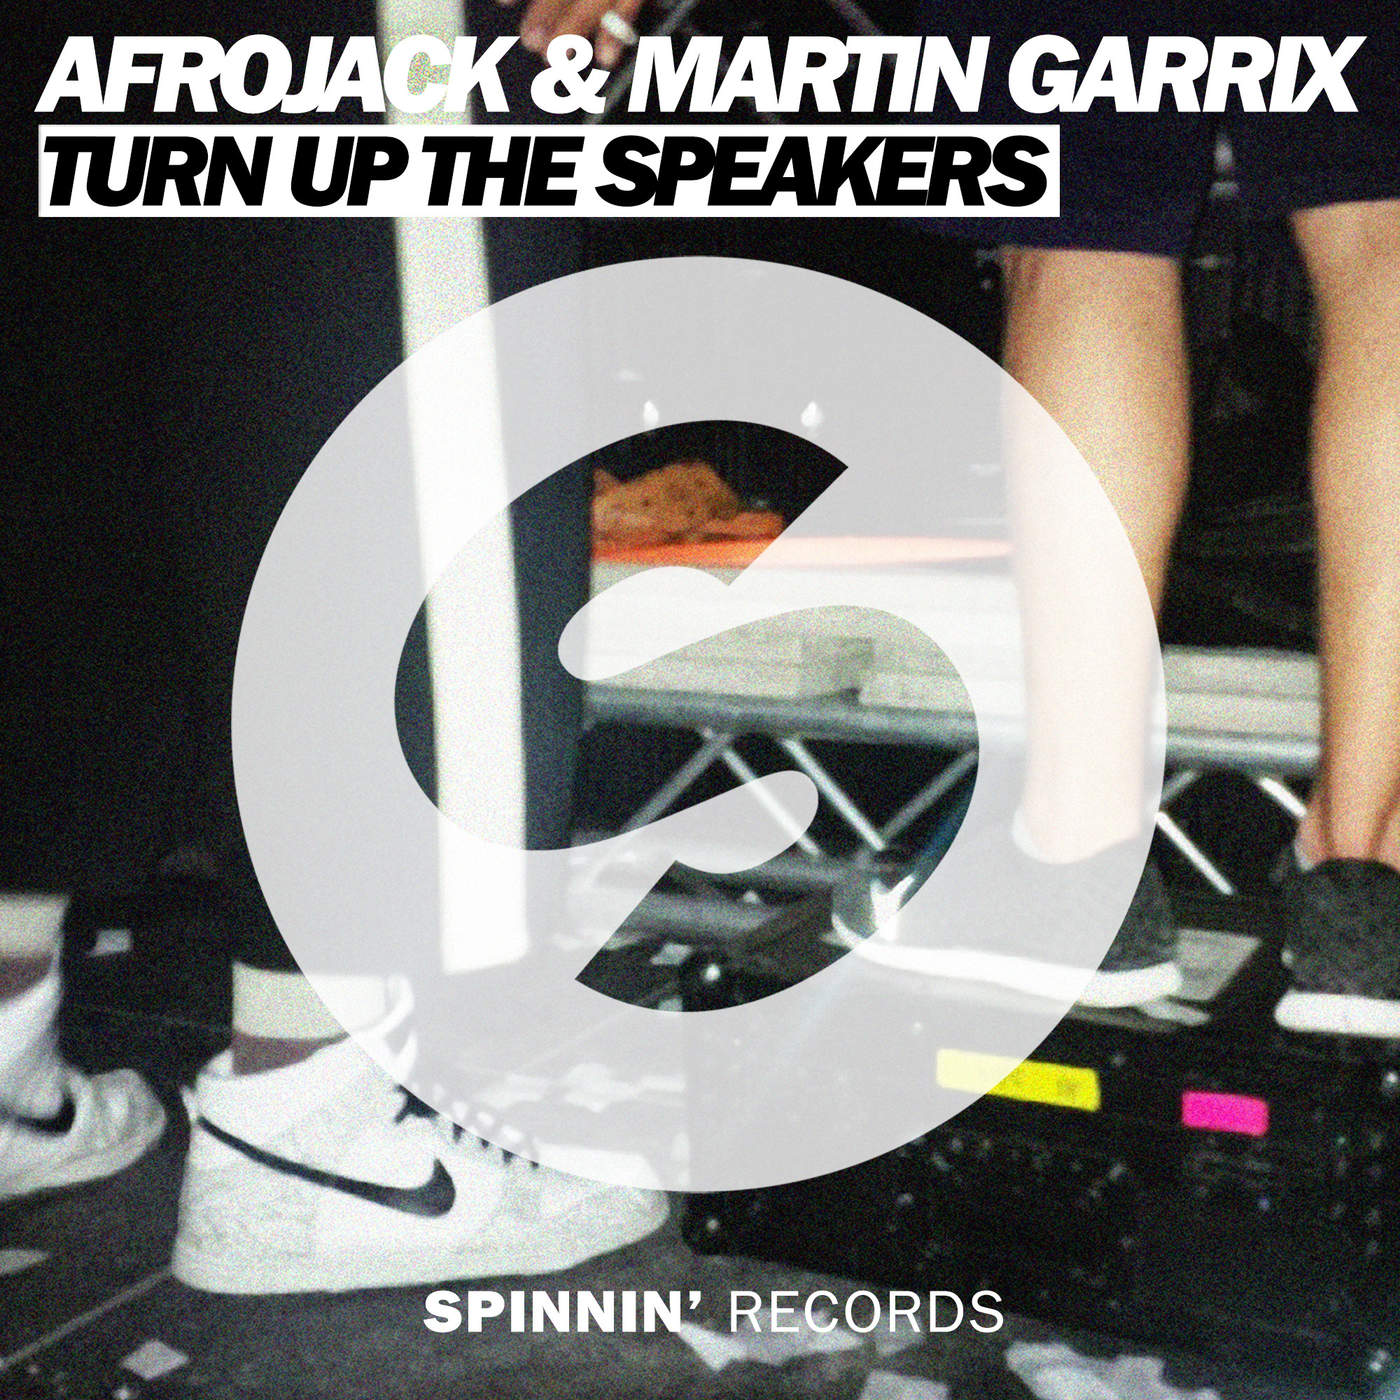 Afrojack & Martin Garrix - Turn Up the Speakers - Single Cover